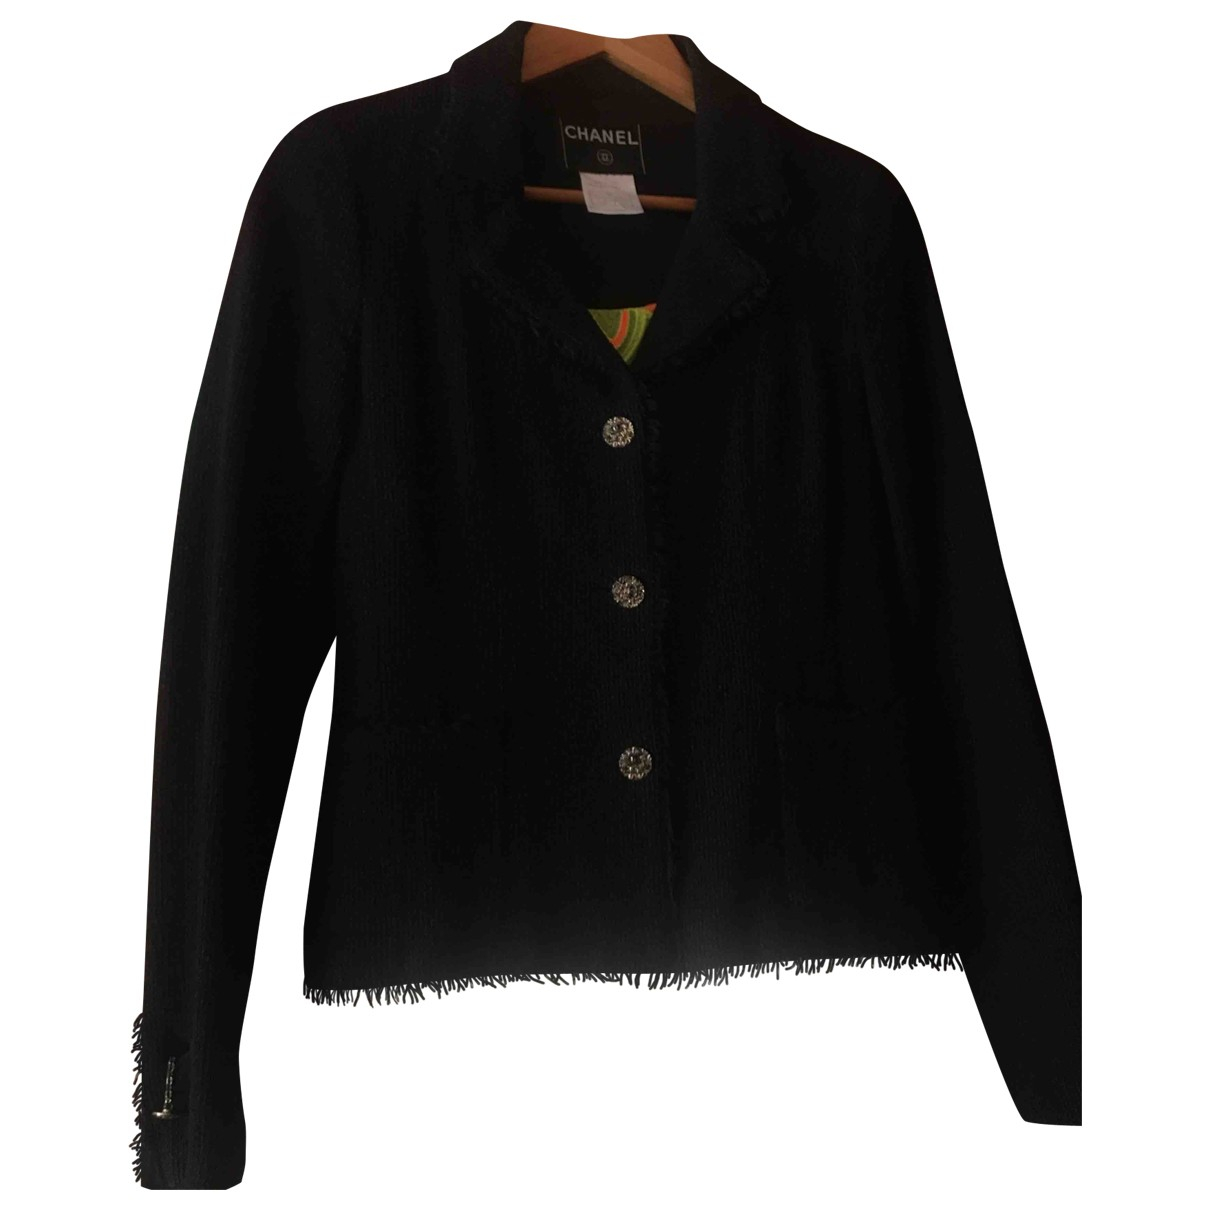 Chanel \N Black Wool jacket for Women 36 FR